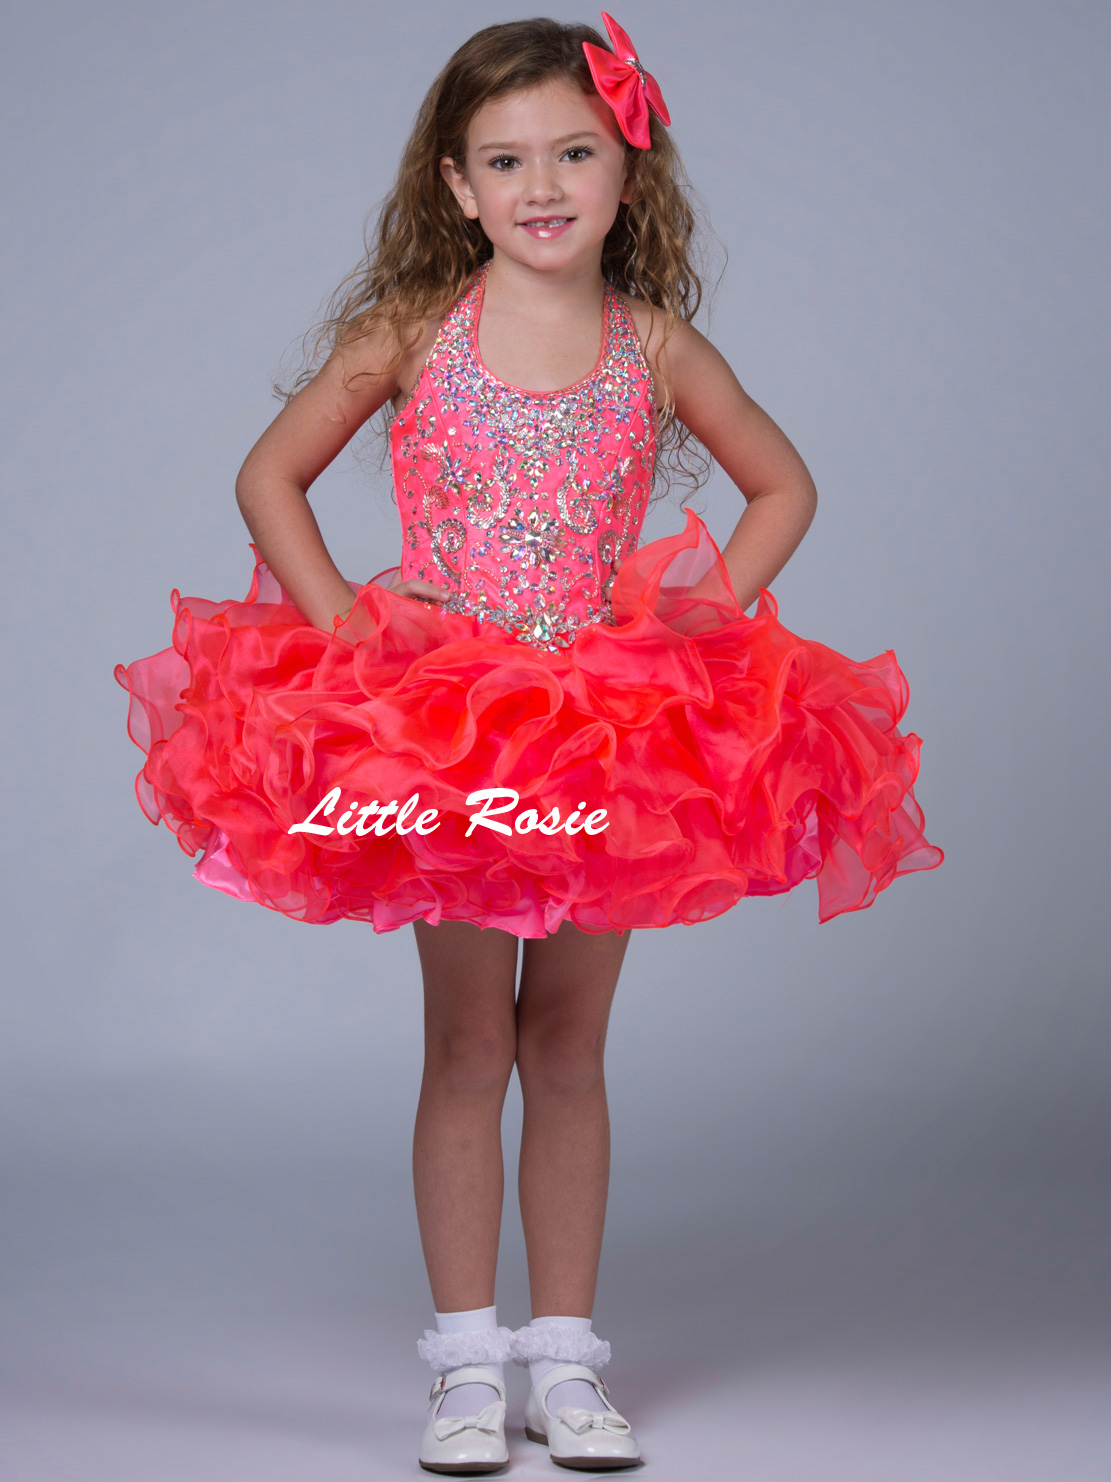 Little Rosie Pageant Halter Pageant Dress SR311PageantDesigns.com